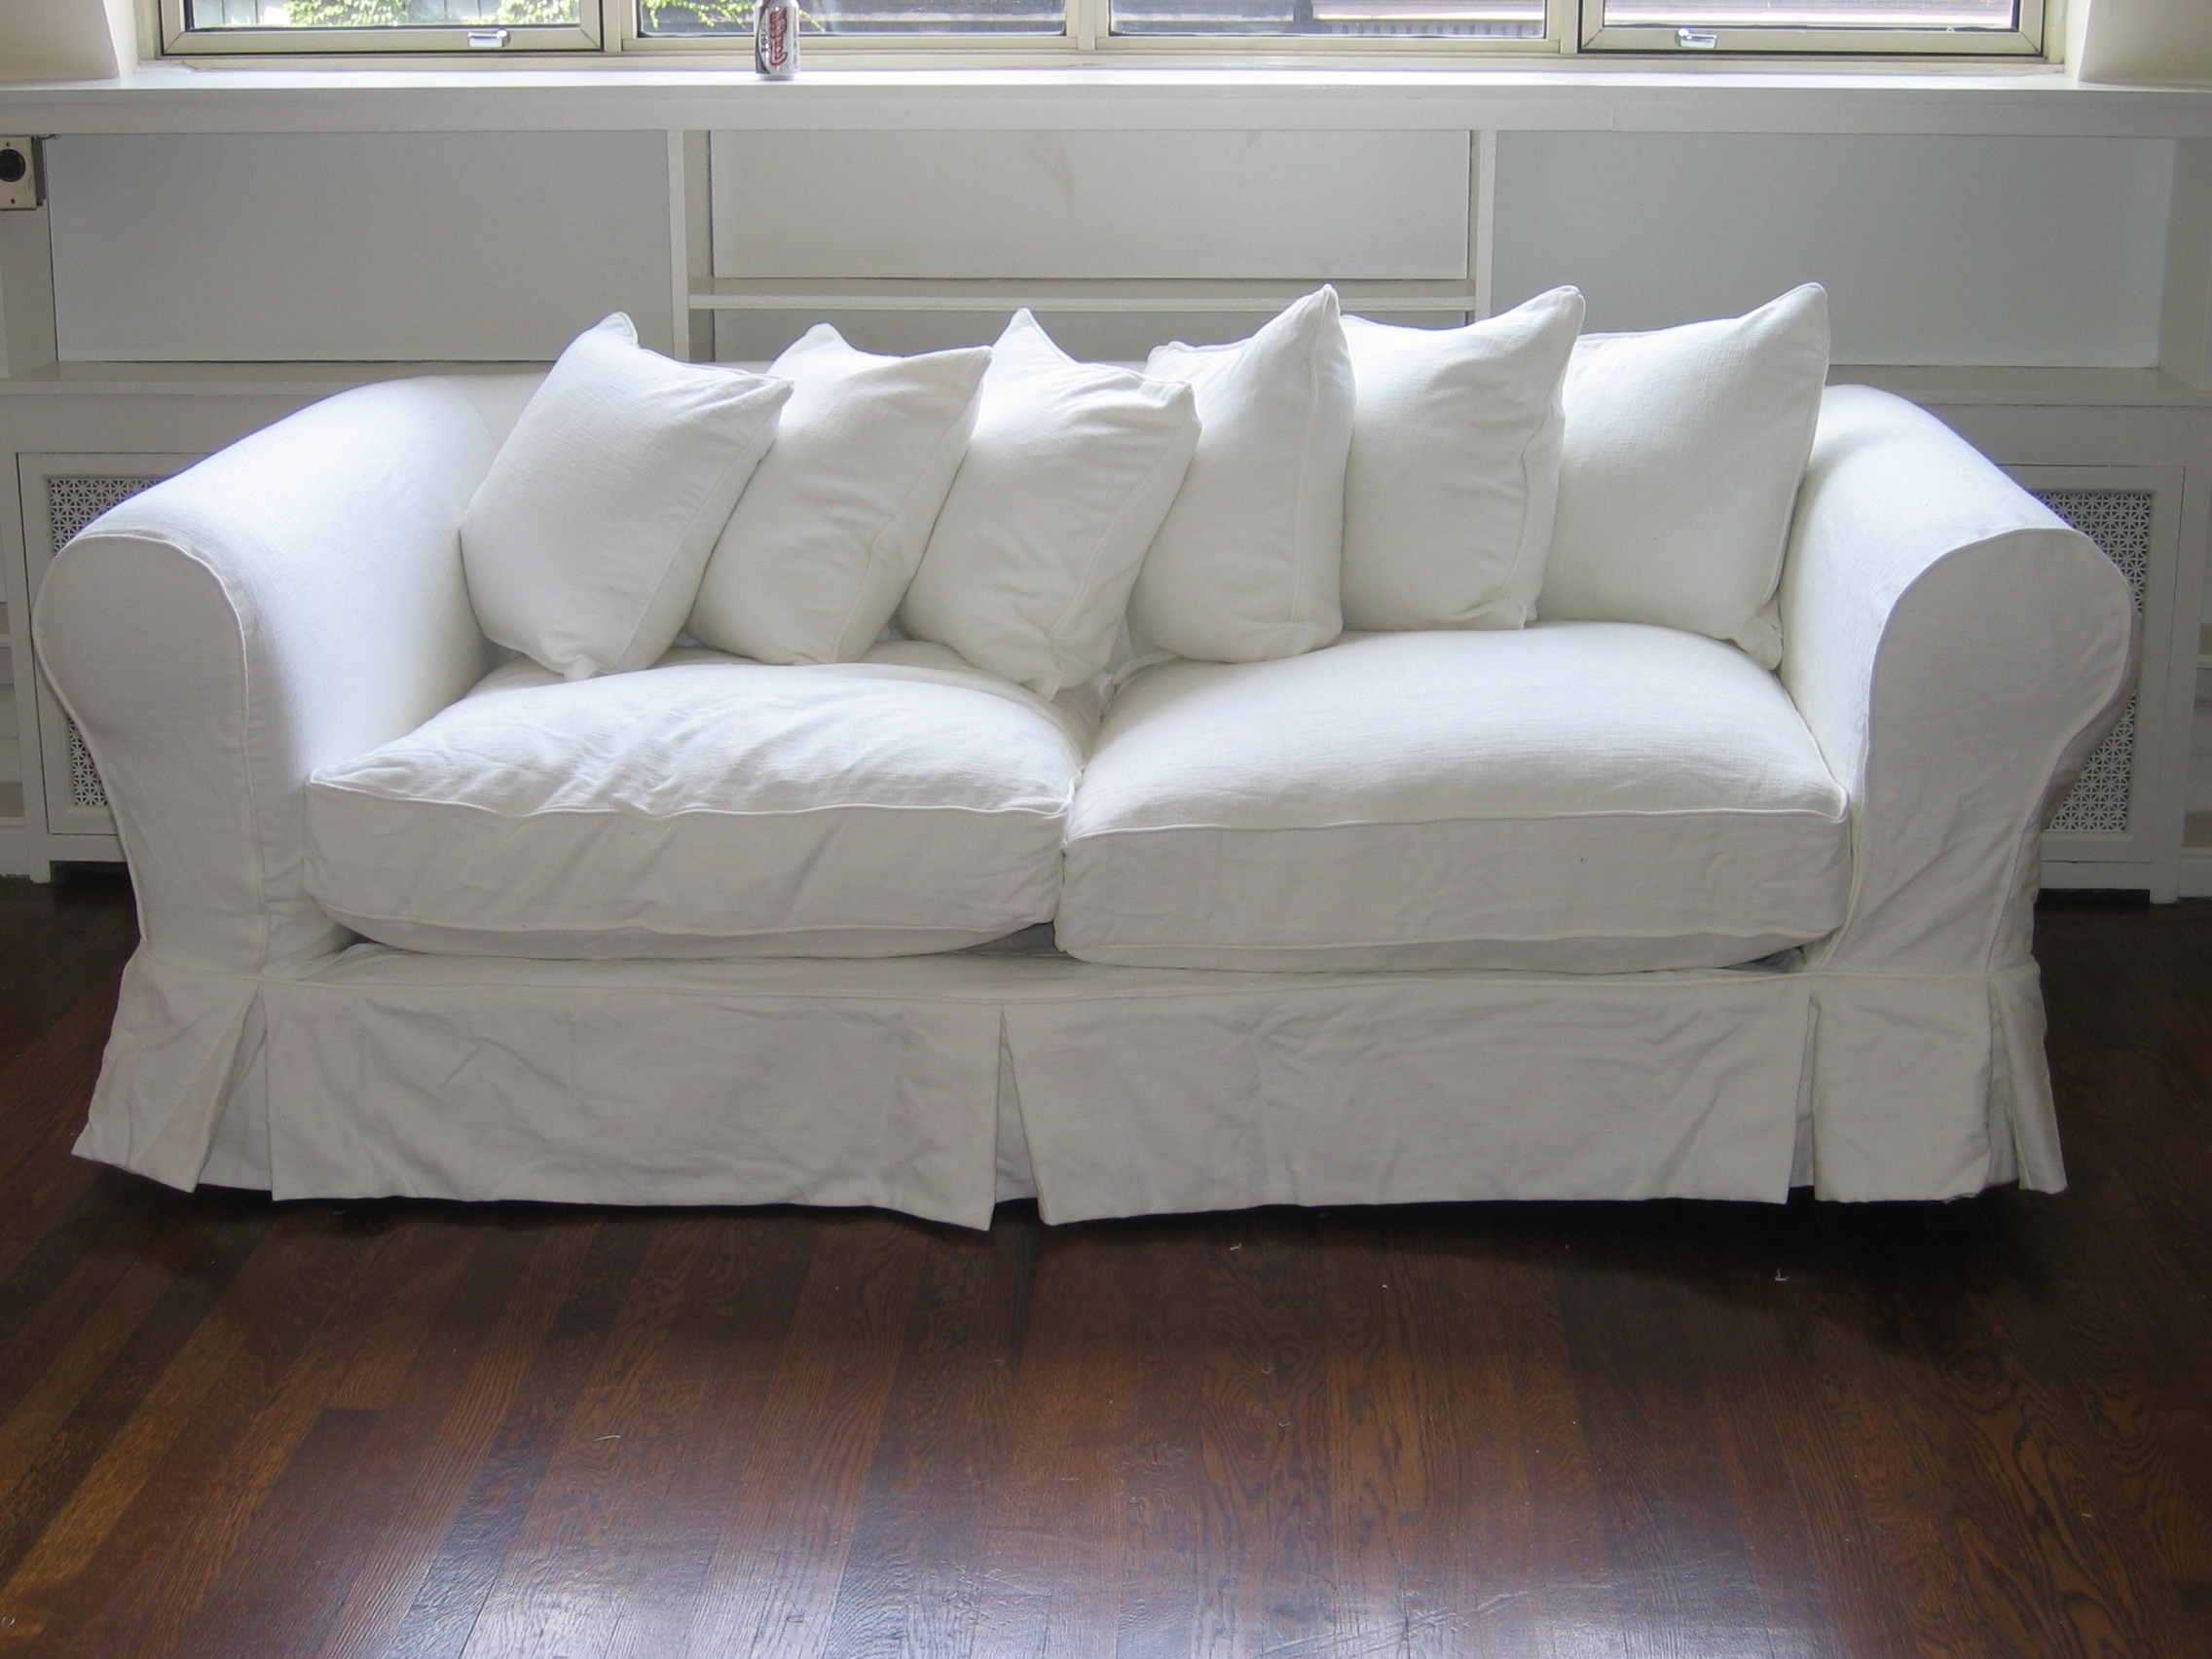 Sofa : Ikea Sofa Reviews Couch For Sale Best Ikea Couch Reddit With Regard To Famous Overstuffed Sofas And Chairs (View 11 of 15)